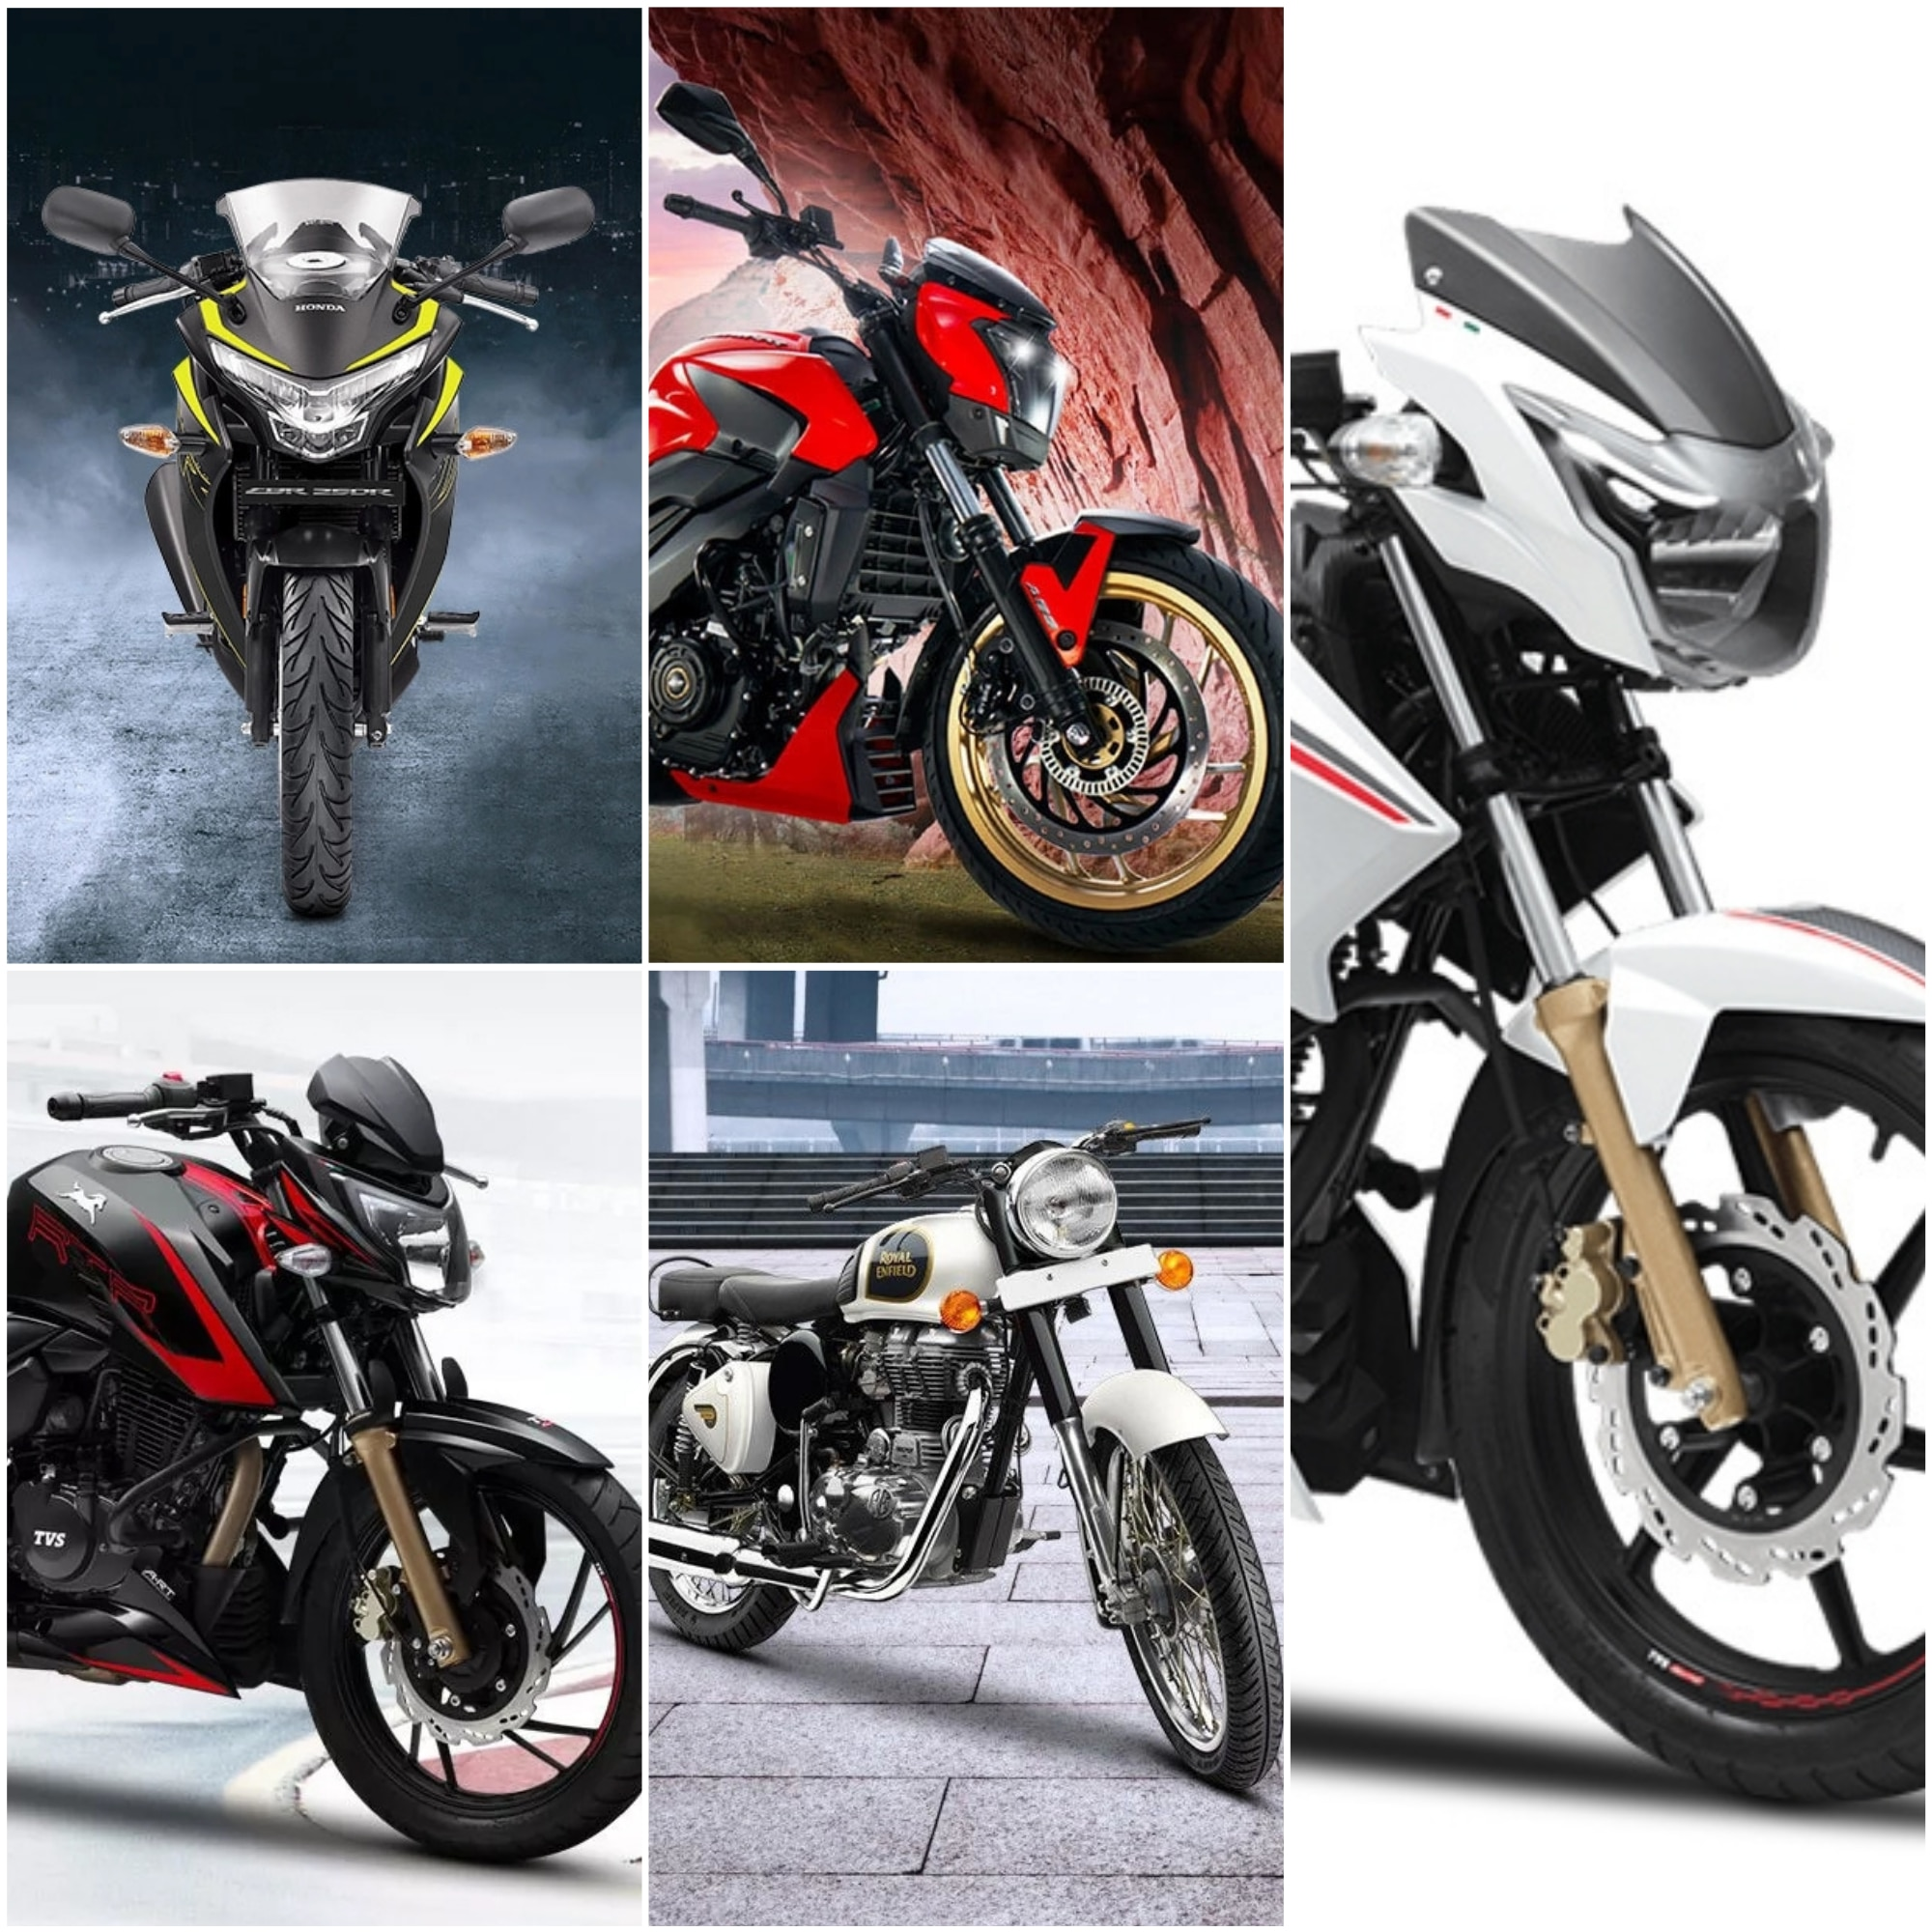 Dual-Channel ABS-equipped Bikes Under Rs 2 lakh: | BikeDekho